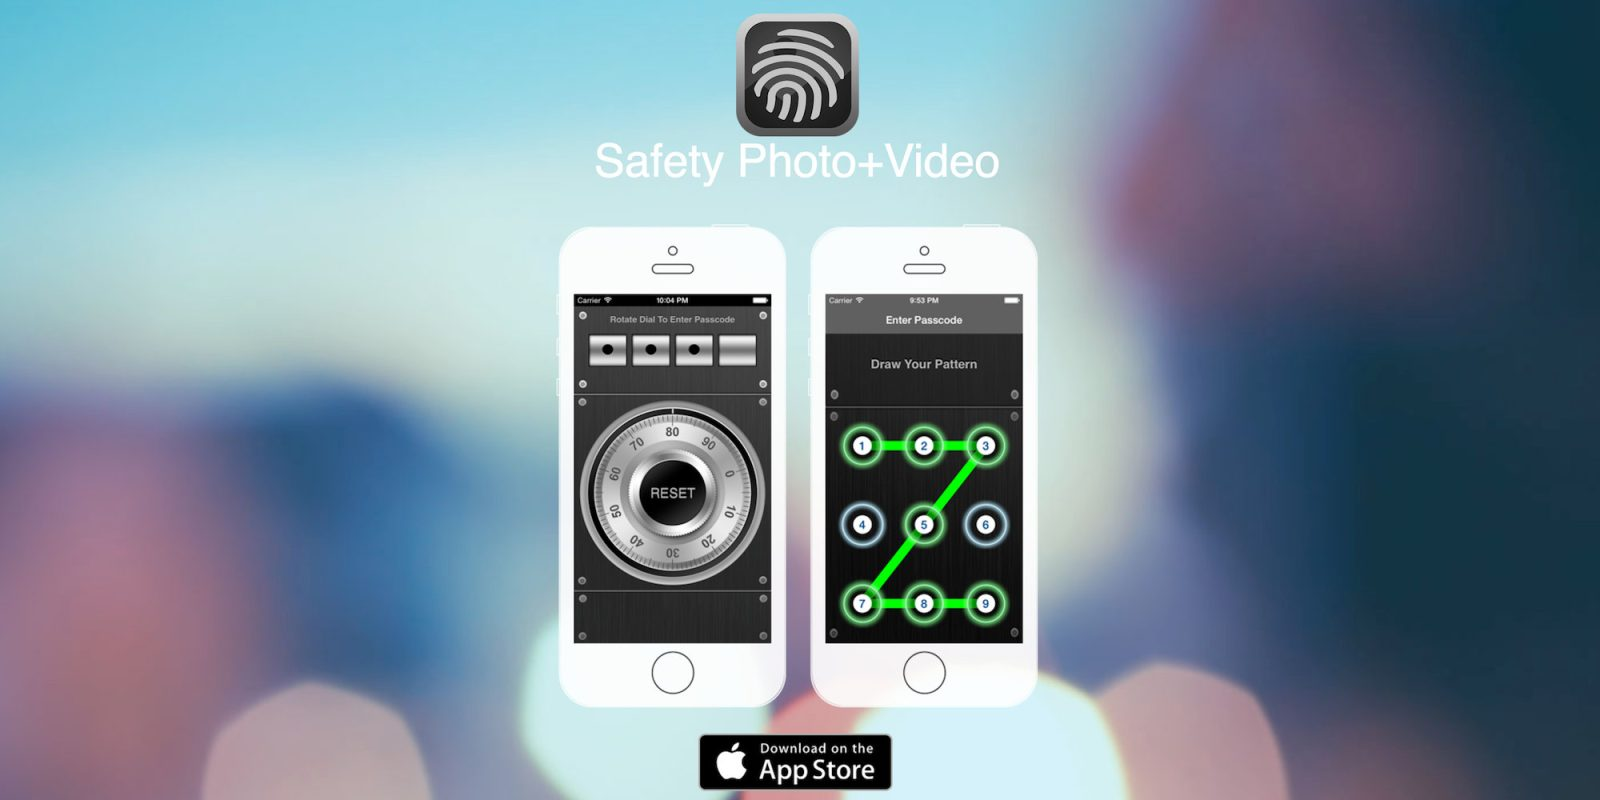 Today's best iOS & Mac App Deals: Safety Photo+Video, Dollar Bill Origami, more